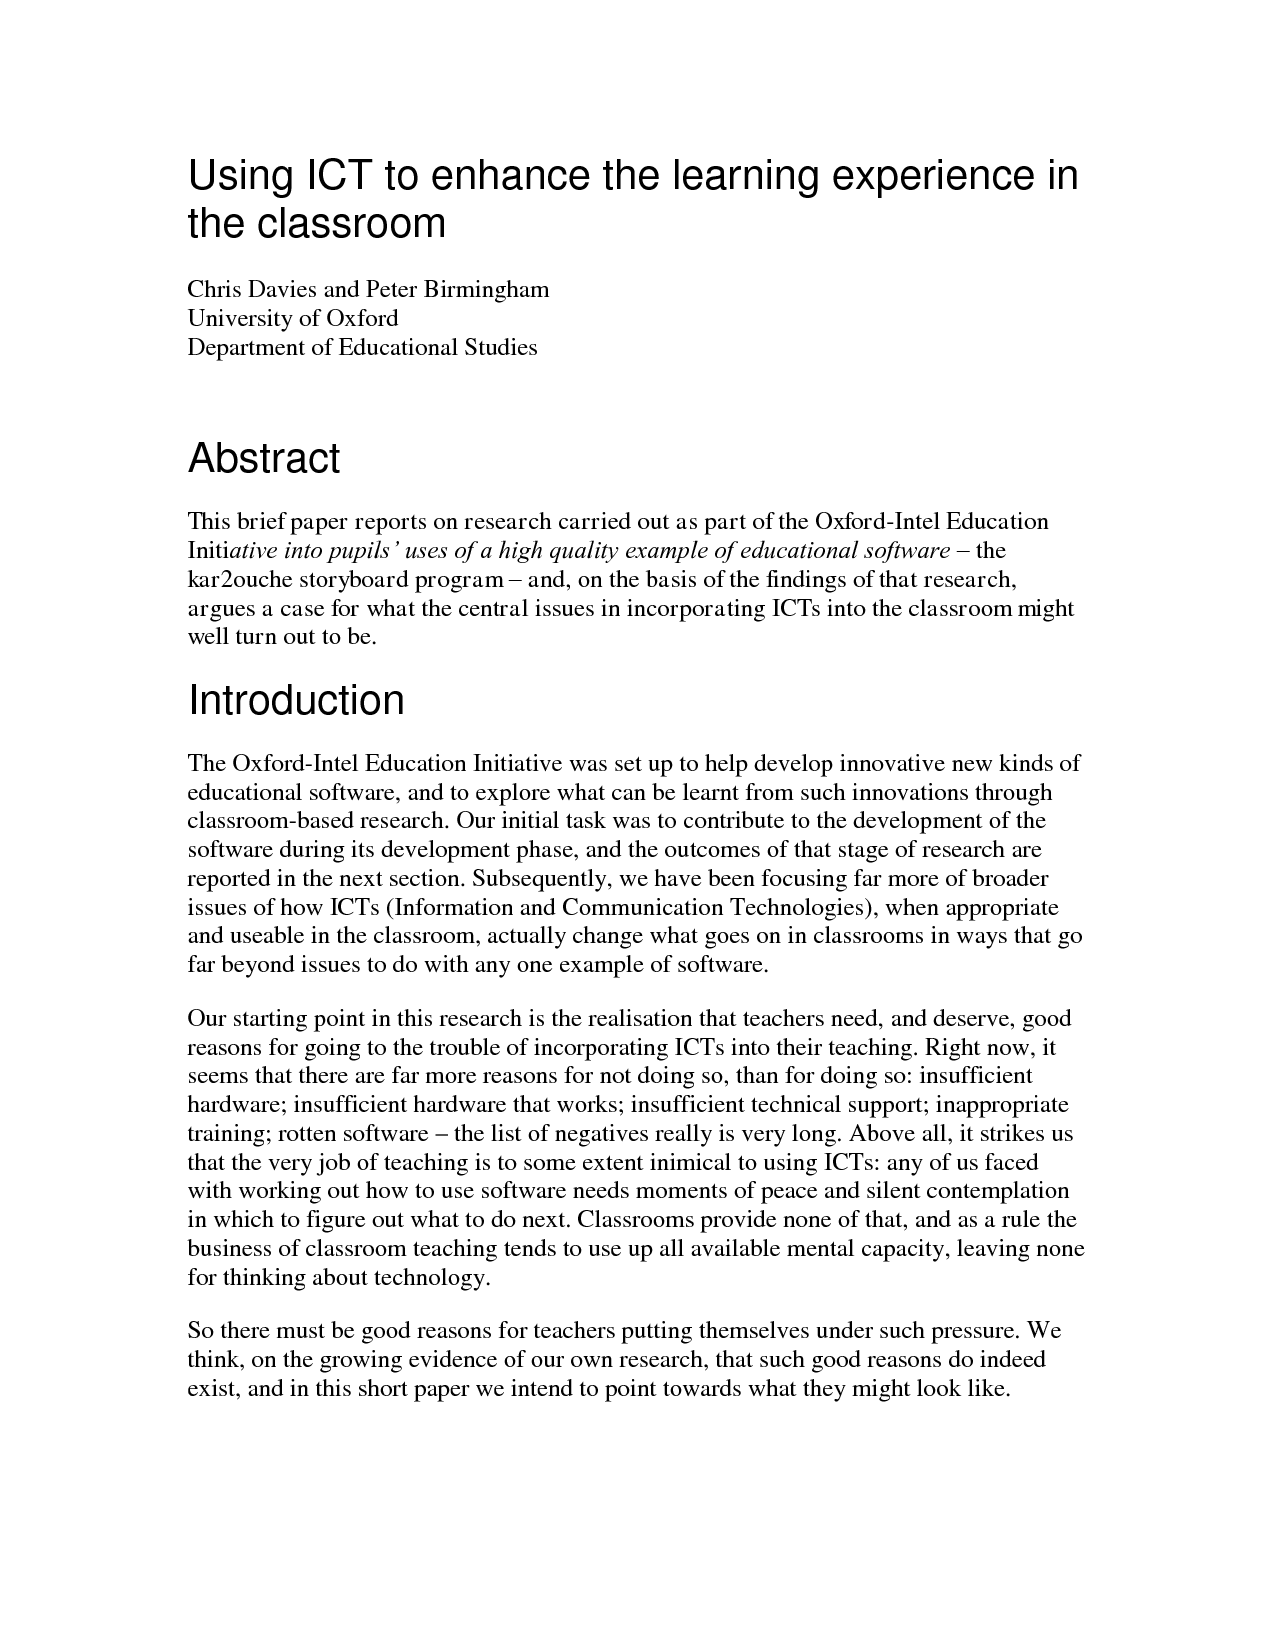 Essay Abstract How To Write An Abstract For A Research Paper Com